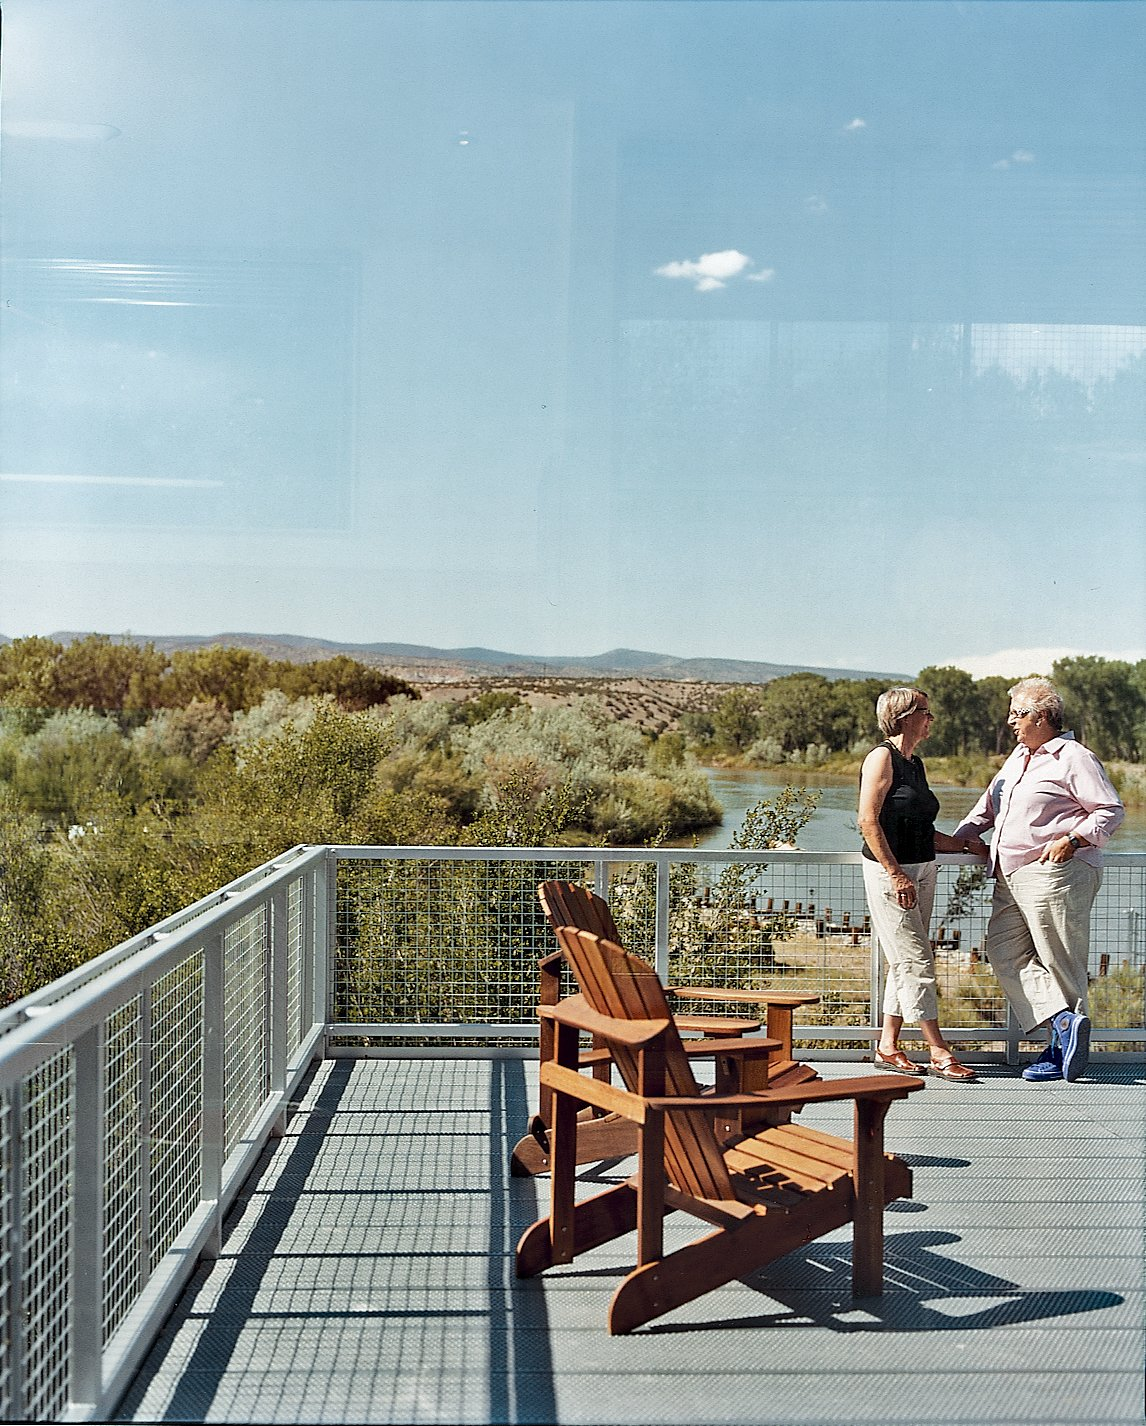 The rooftop is wired for a solar farm, but they are waiting for better prices and tax breaks before investing. Tagged: Outdoor, Rooftop, Wood Patio, Porch, Deck, and Metal Fences, Wall.  Photo 10 of 10 in Abiquiu Debut